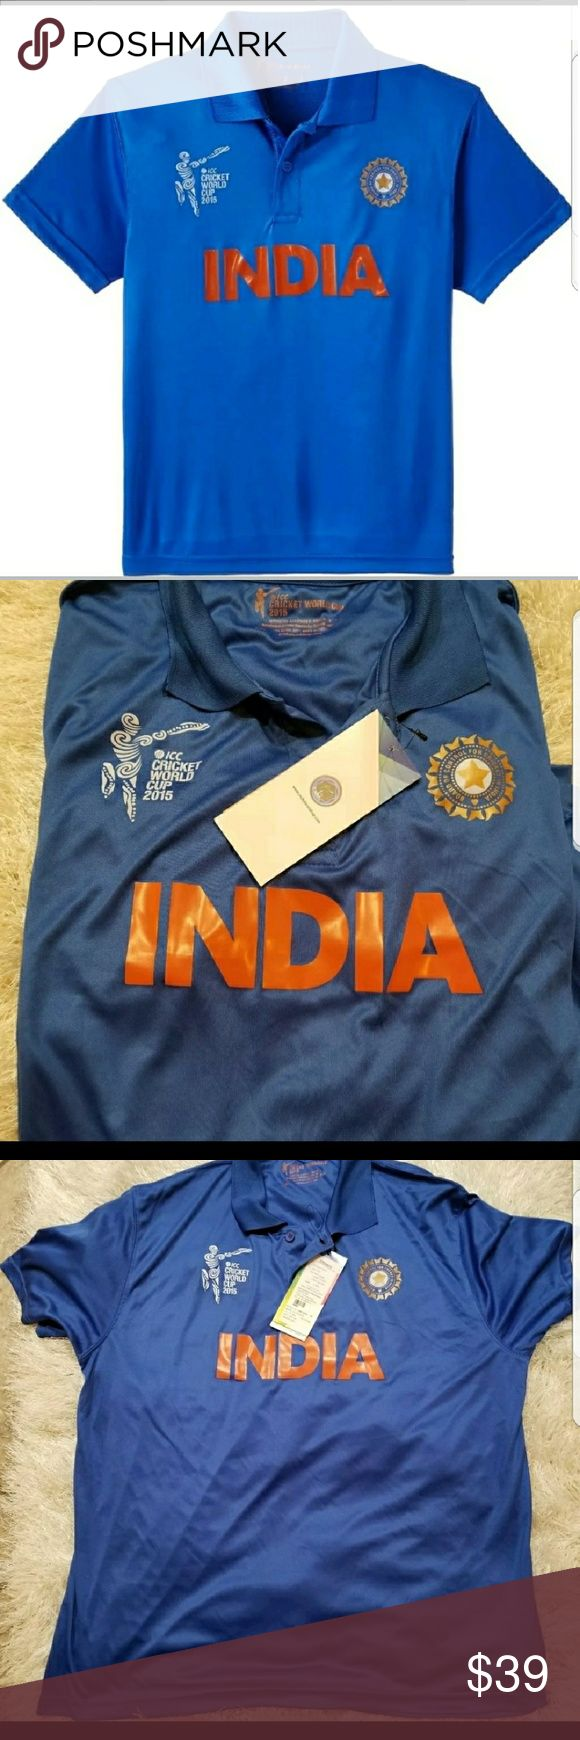 2015 ICC Cricket World Cup India Jersey Twenty20 NWT 2015 ICC Cricket World Cup India Jersey World Twenty20 Jersey XXL  Brand new item.  Size is XXL - looks like it fit a large or xl though.  Measurements 21inches armpit to armpit armpit to hem 15.5  Thanks for looking! Twenty Shirts